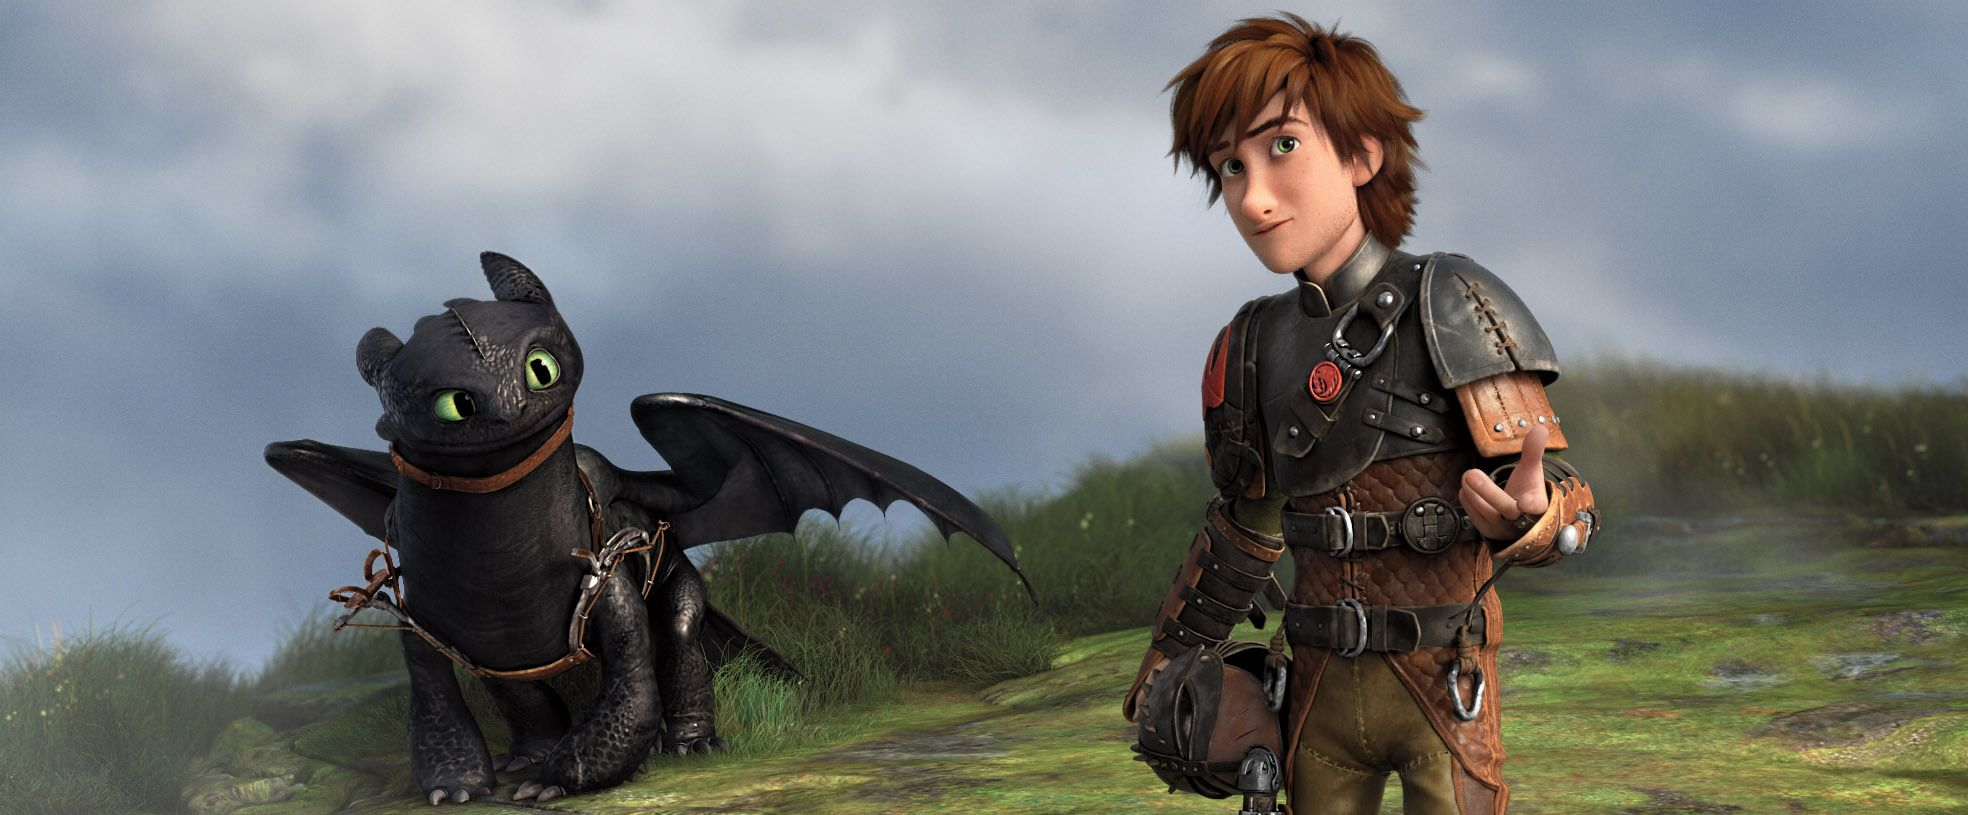 dean deblois talks how to train your dragon 2 and 3, big story